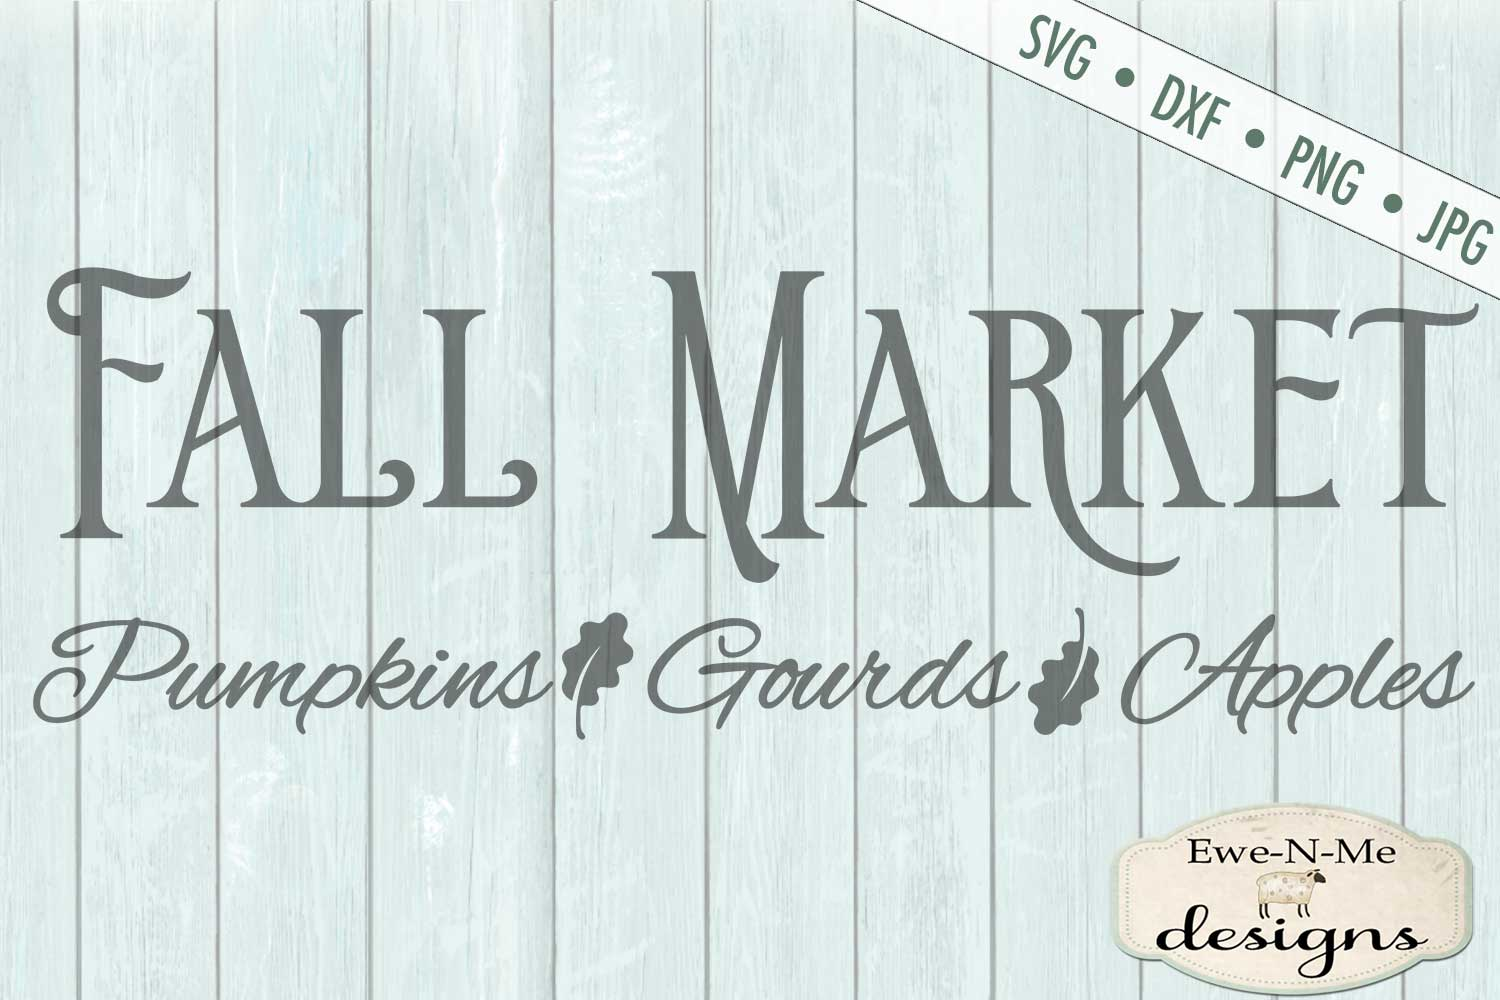 Fall Market - Pumpkins Gourds Apples - Autumn - SVG DXF example image 2